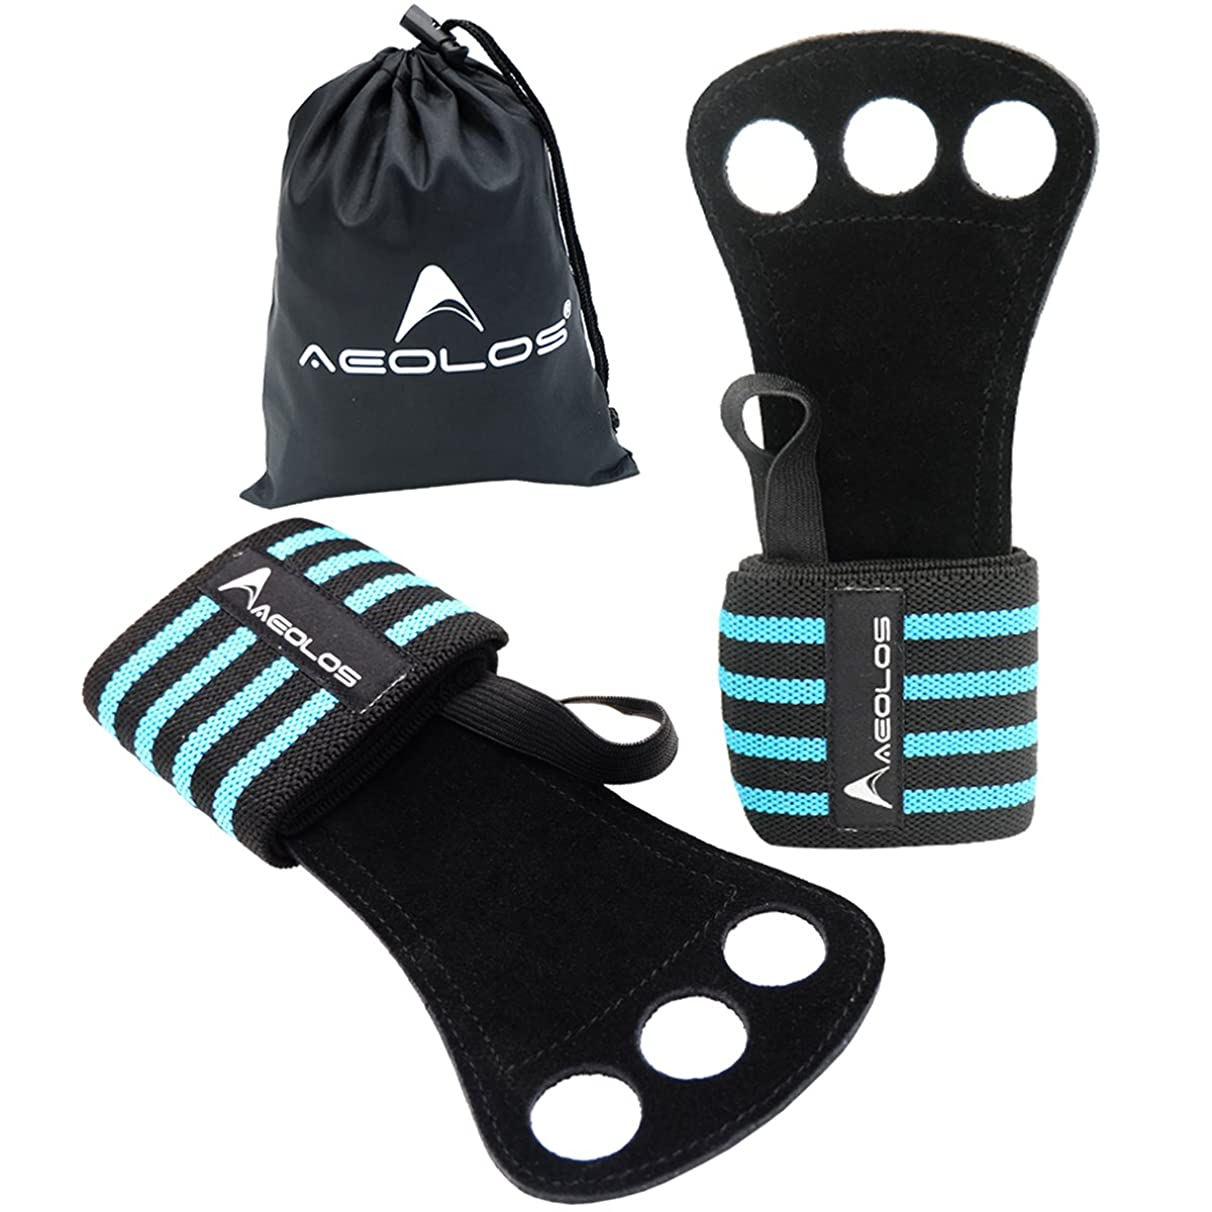 AEOLOS Gymnastics Hand Grips/Crossfit Gloves with Wrist Wrap Support -Perfect for WODs,Pull up,Power Weight Lifting,Kettlebells and Gym Workout